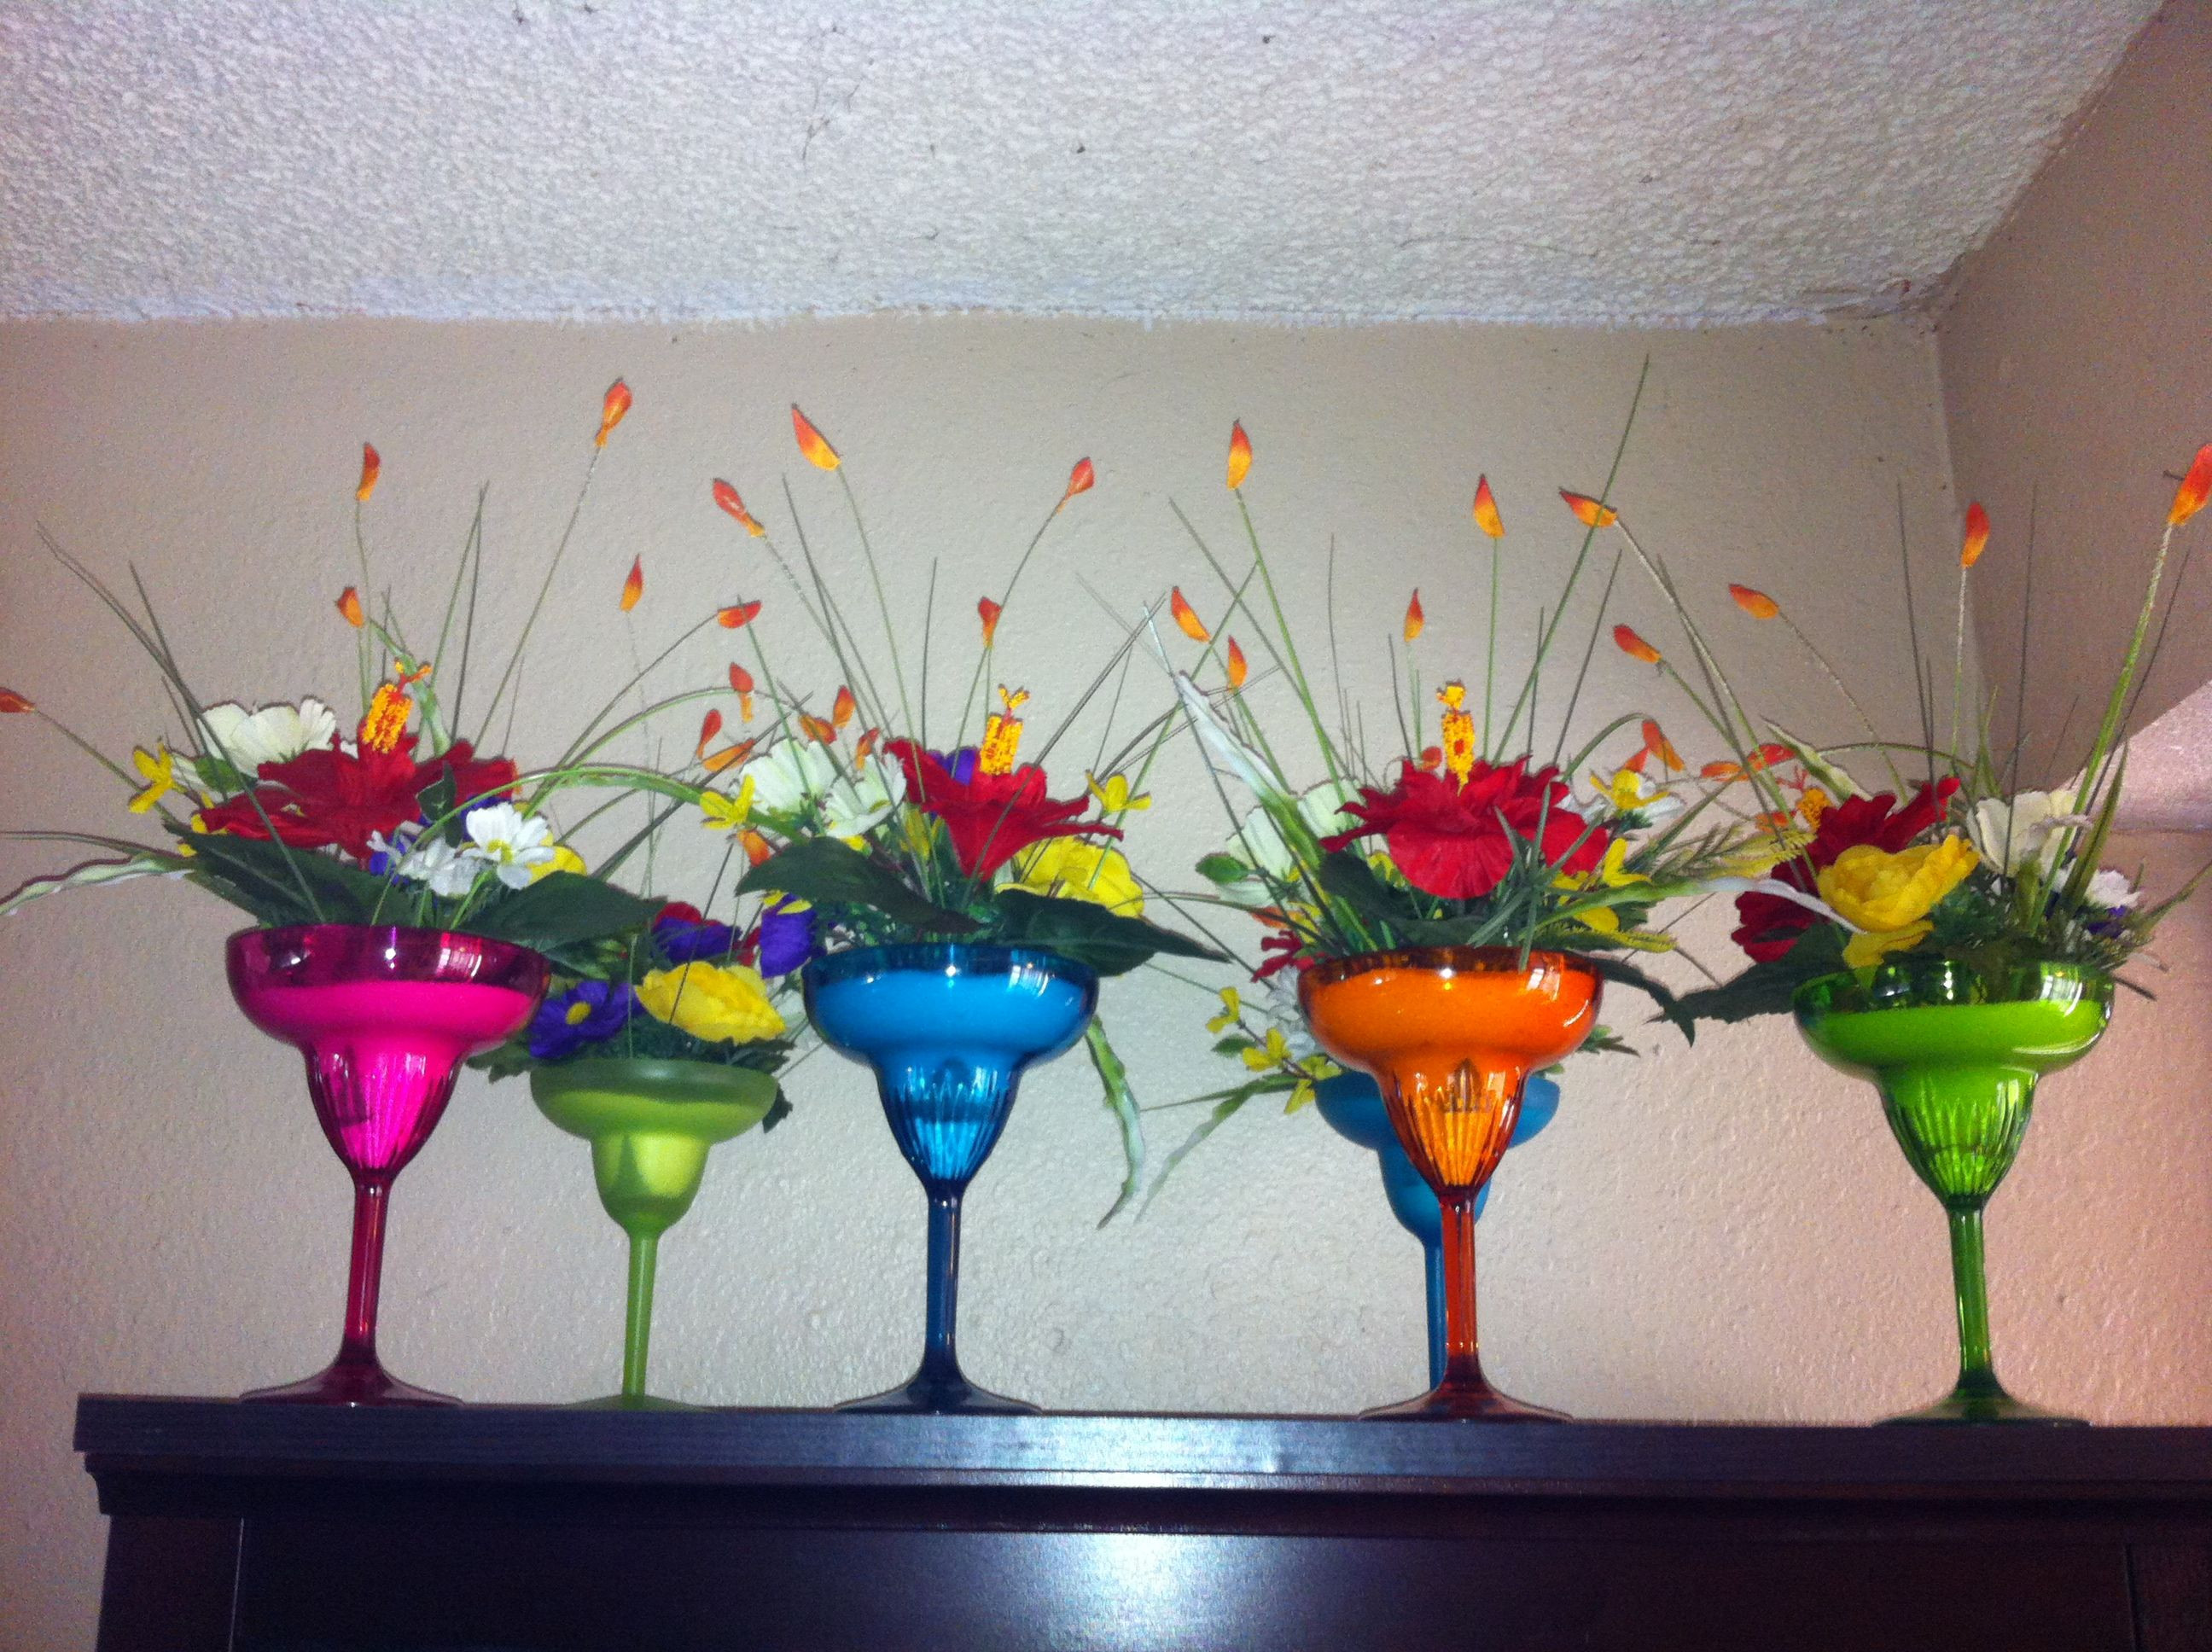 Large Acrylic Martini Vases Of Fiesta Party Centerpieces Plastic Margarita Glasses Filled with Inside Fiesta Party Centerpieces Plastic Margarita Glasses Filled with White Sand and Bright Colored Flowers